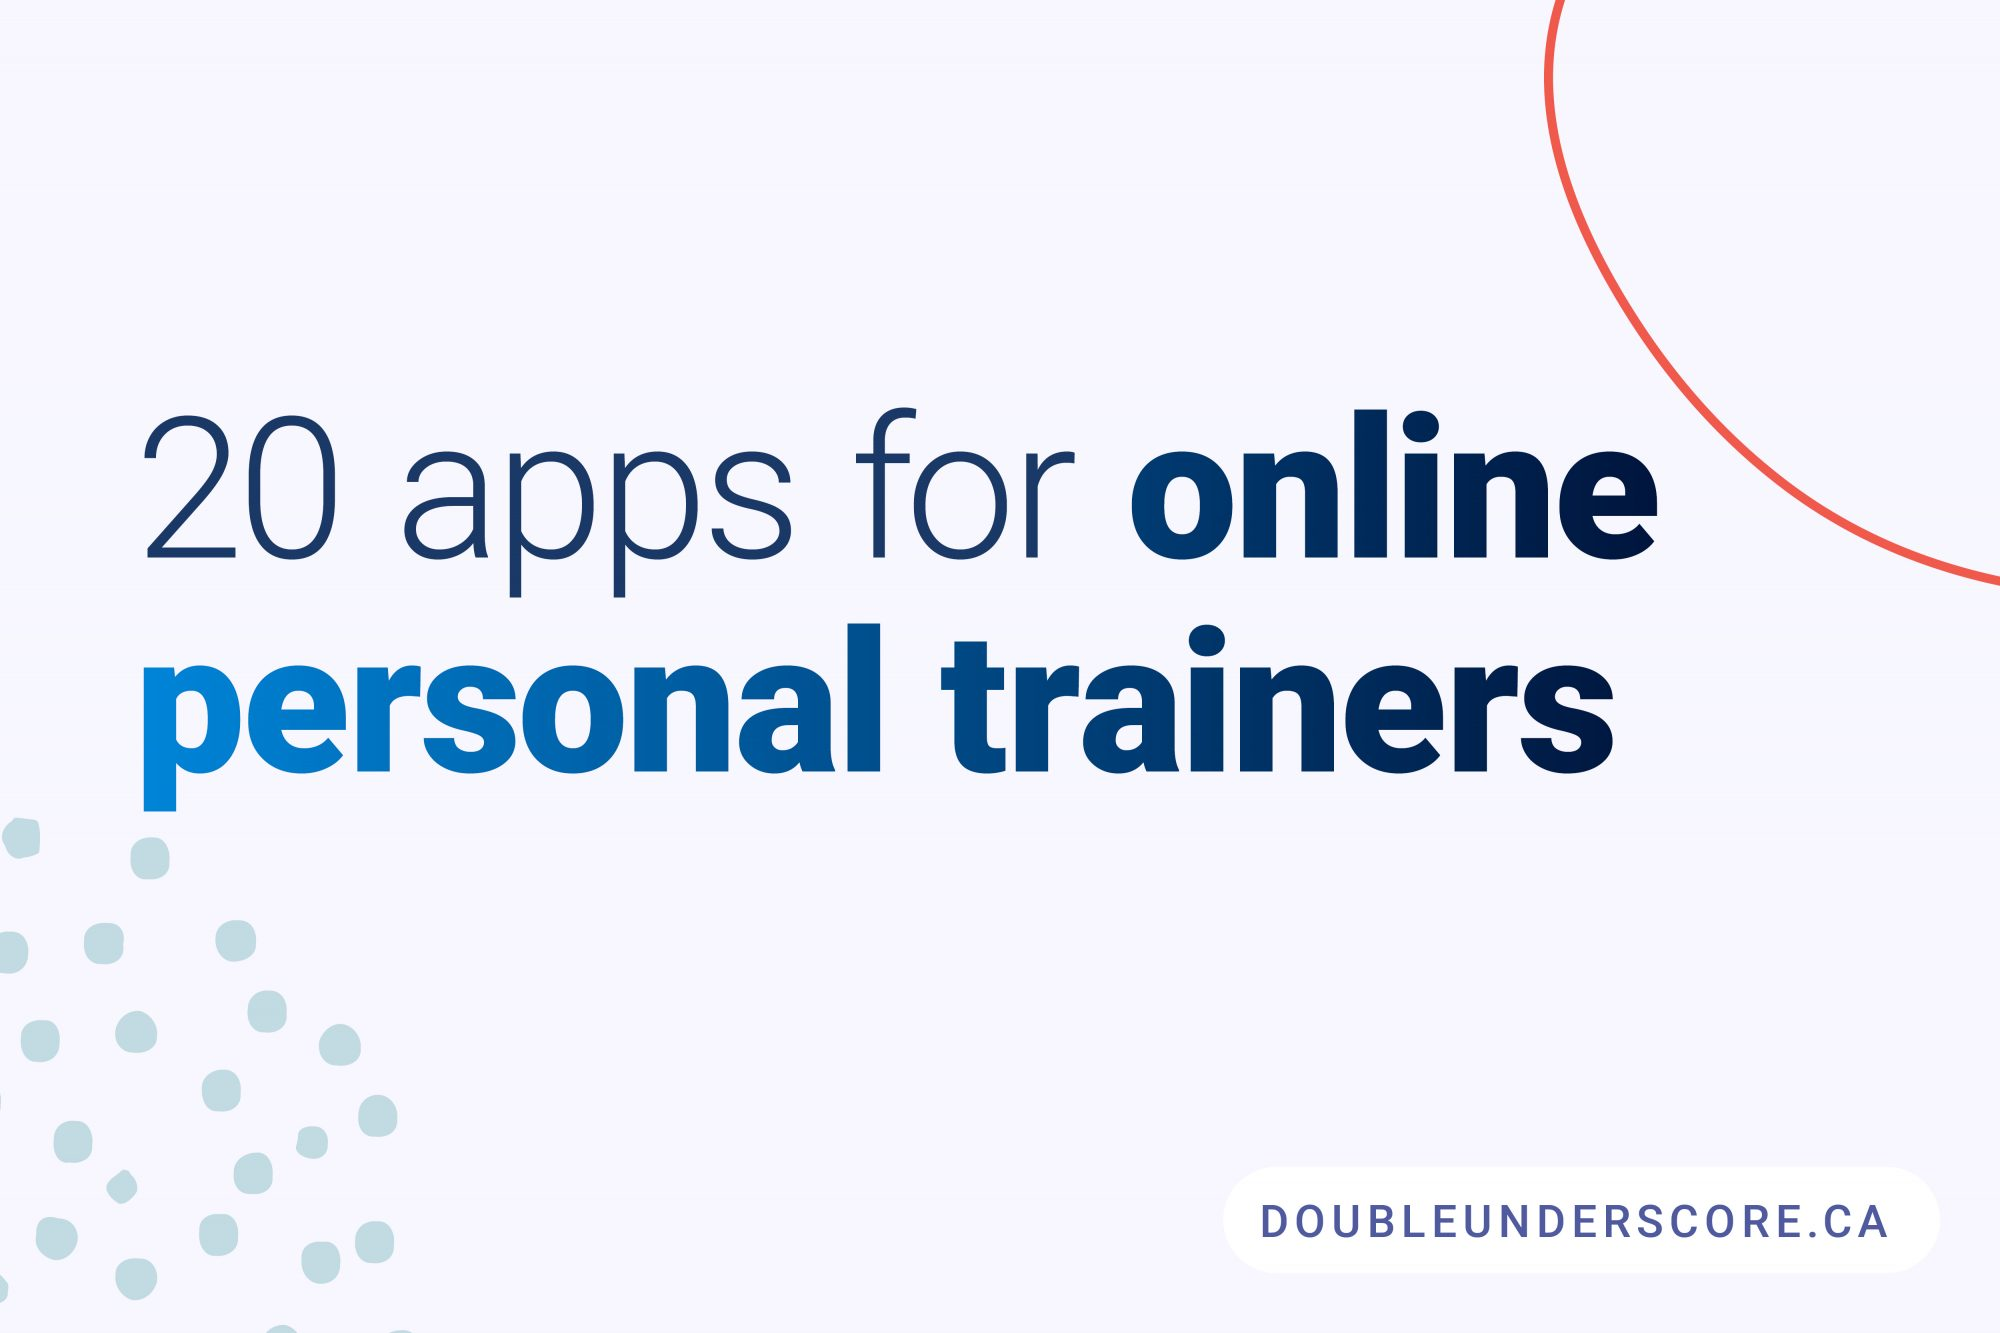 20 Apps For Online Personal Trainers by DoubleUnderscore